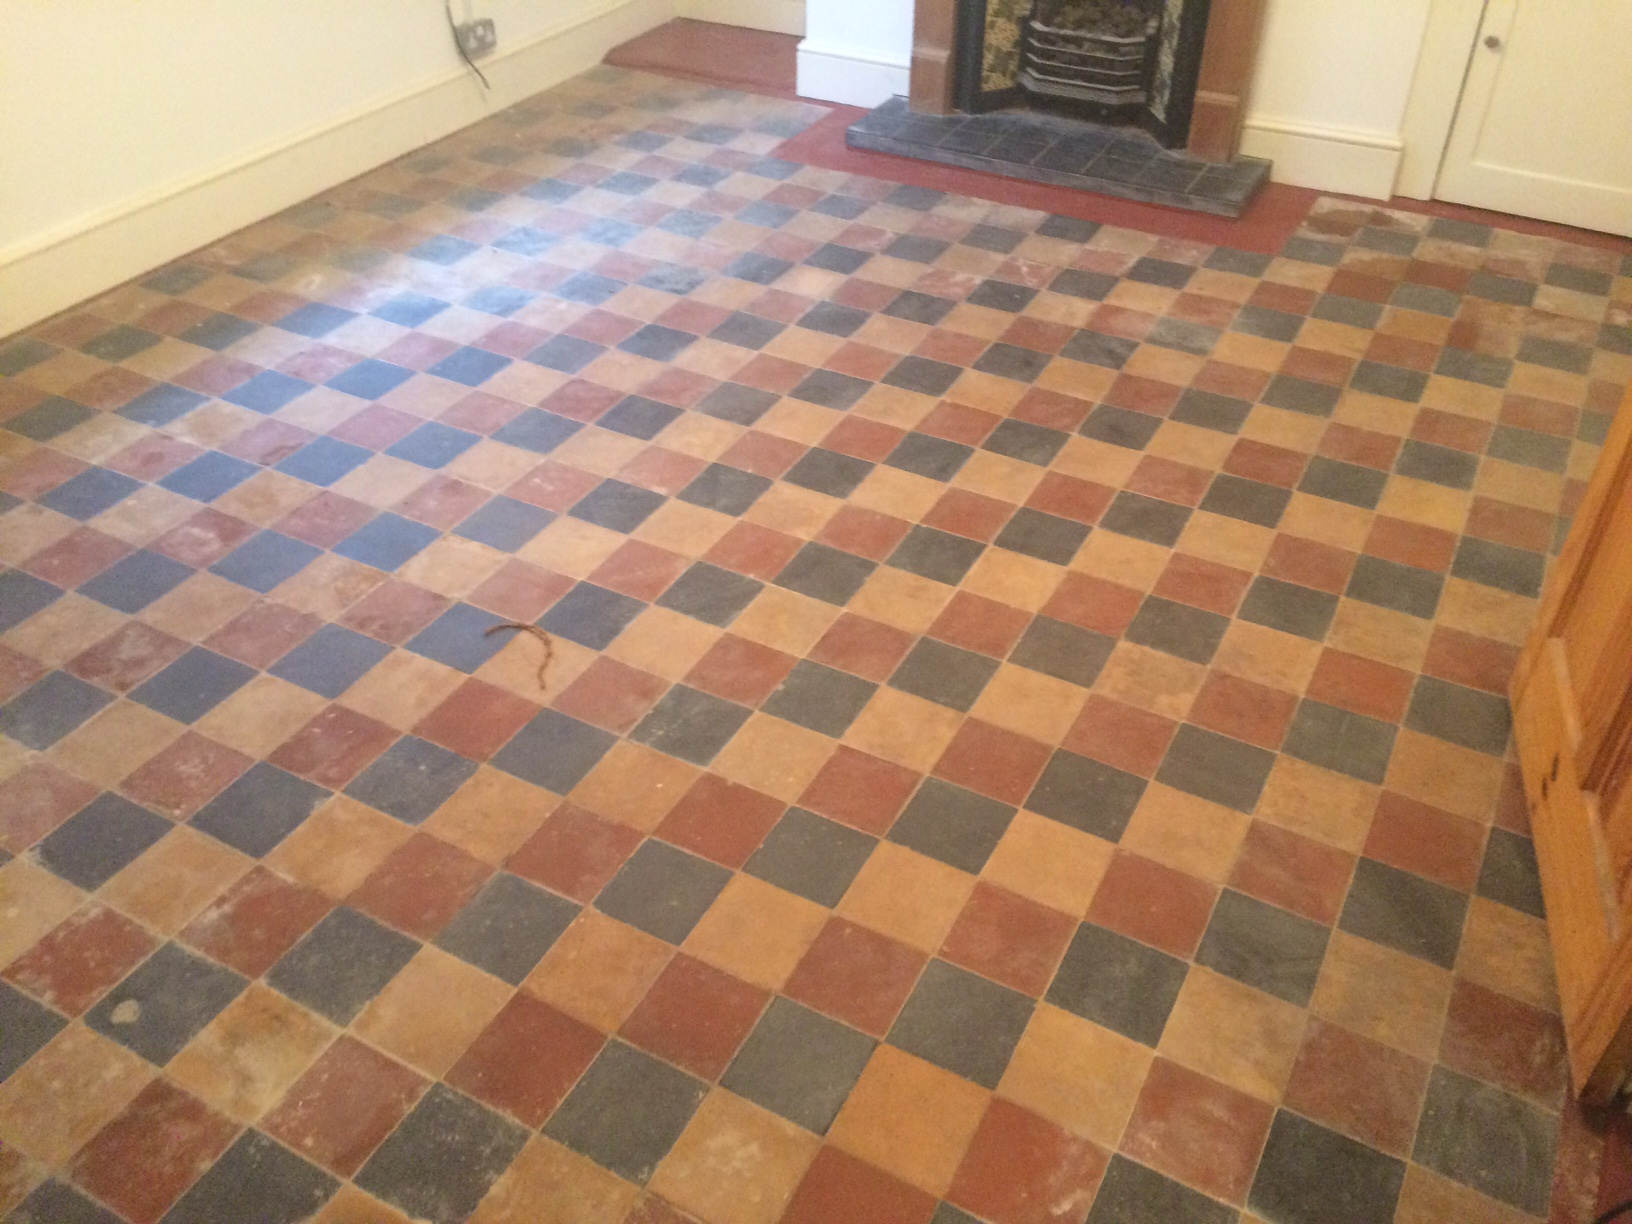 Cleaning and maintenance advice for victorian tiled floors restoring victorian floor tiles hidden under lino in berkshire doublecrazyfo Gallery